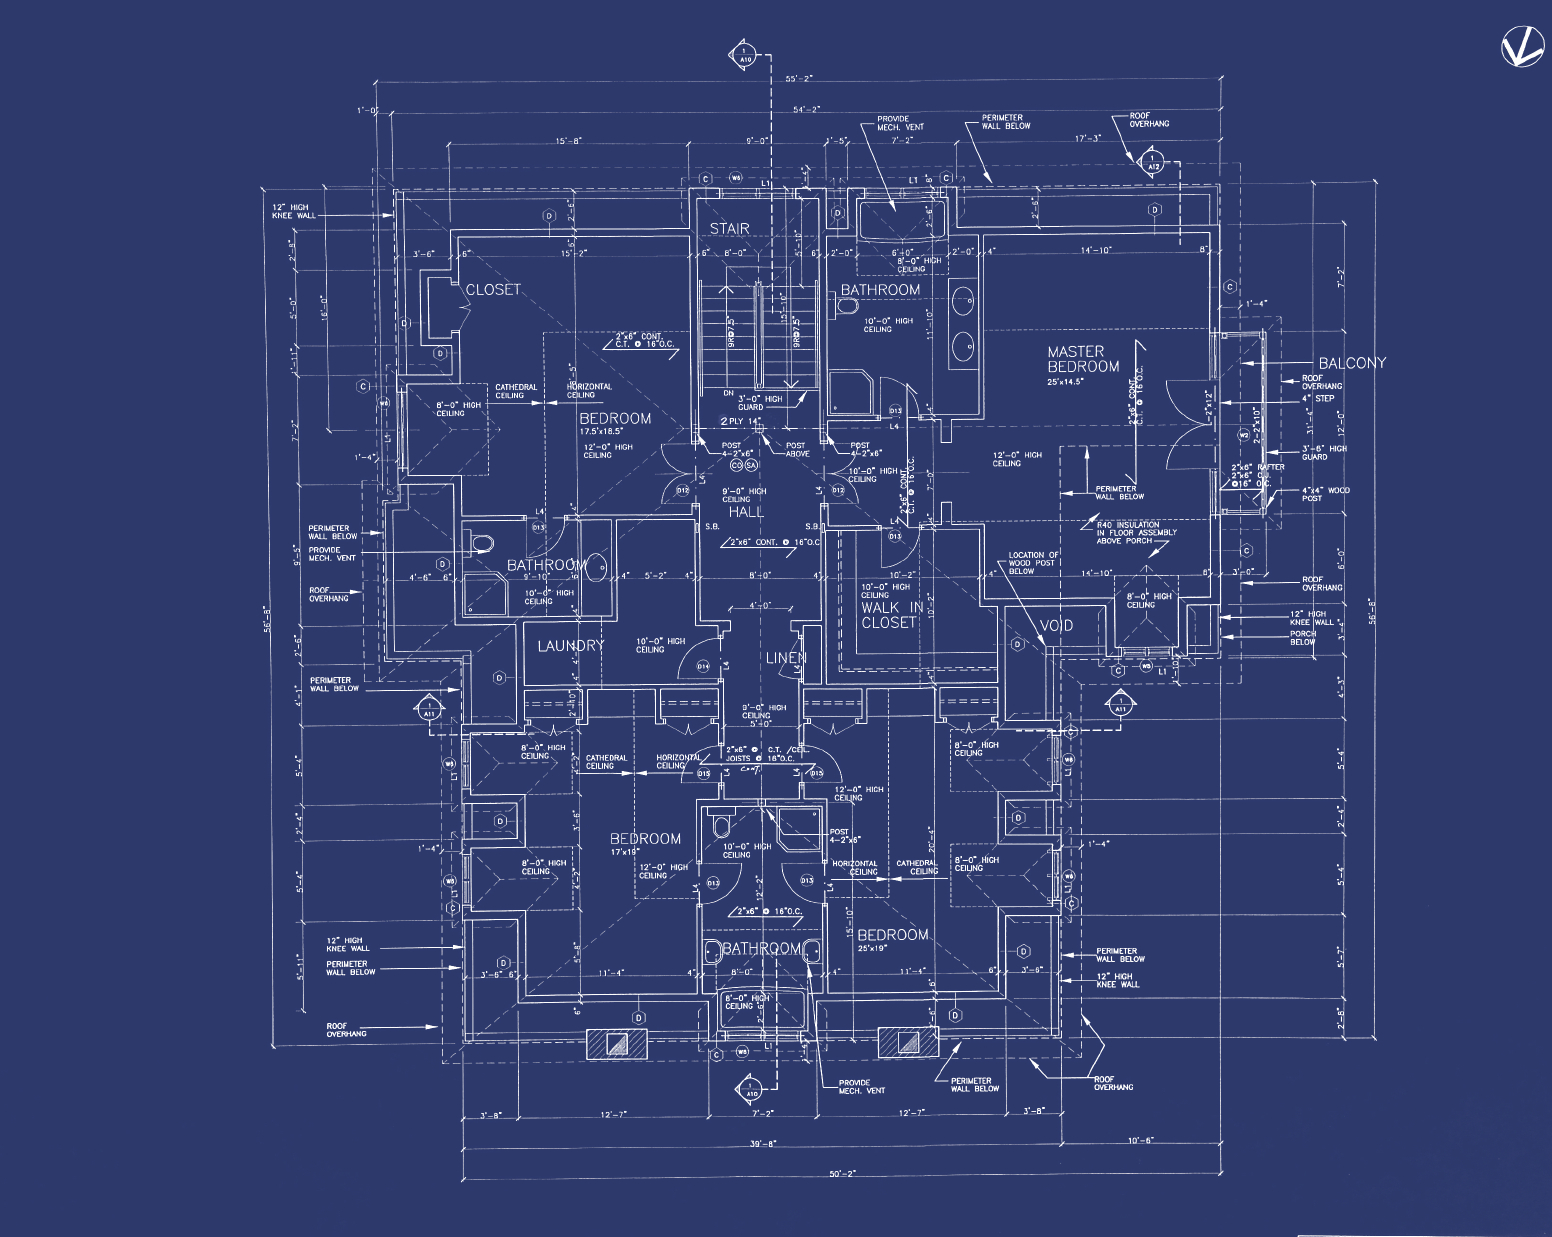 The Blueprint Urban Samurai: blueprints of houses to build